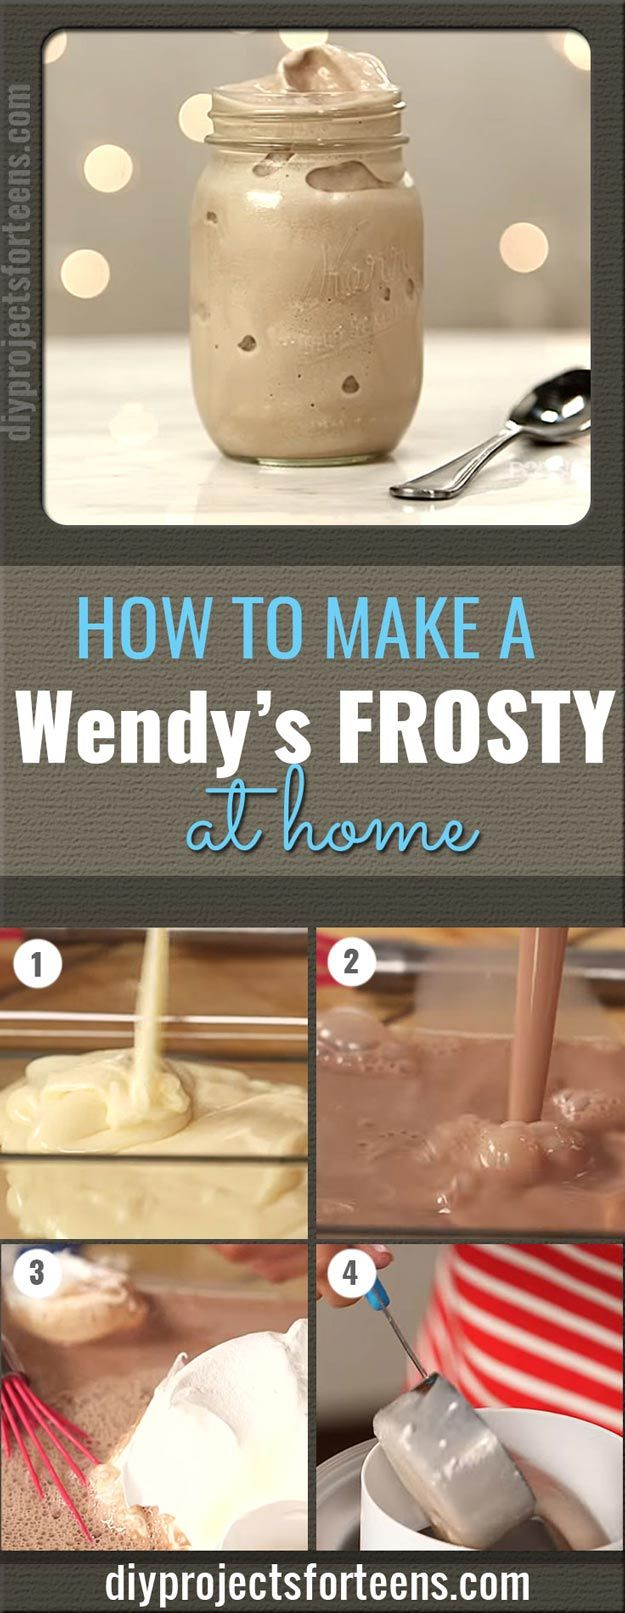 Copycat Recipes From Top Restaurants. Best Recipe Knockoffs from Chipotle, Starbucks, Olive Garden, Cinabbon, Cracker Barrel, Taco Bell, Cheesecake Factory, KFC, Mc Donalds, Red Lobster, Panda Express | Make A Wendy's Frosty At Home With Only 3 Ingredients | http://diyjoy.com/copycat-recipes